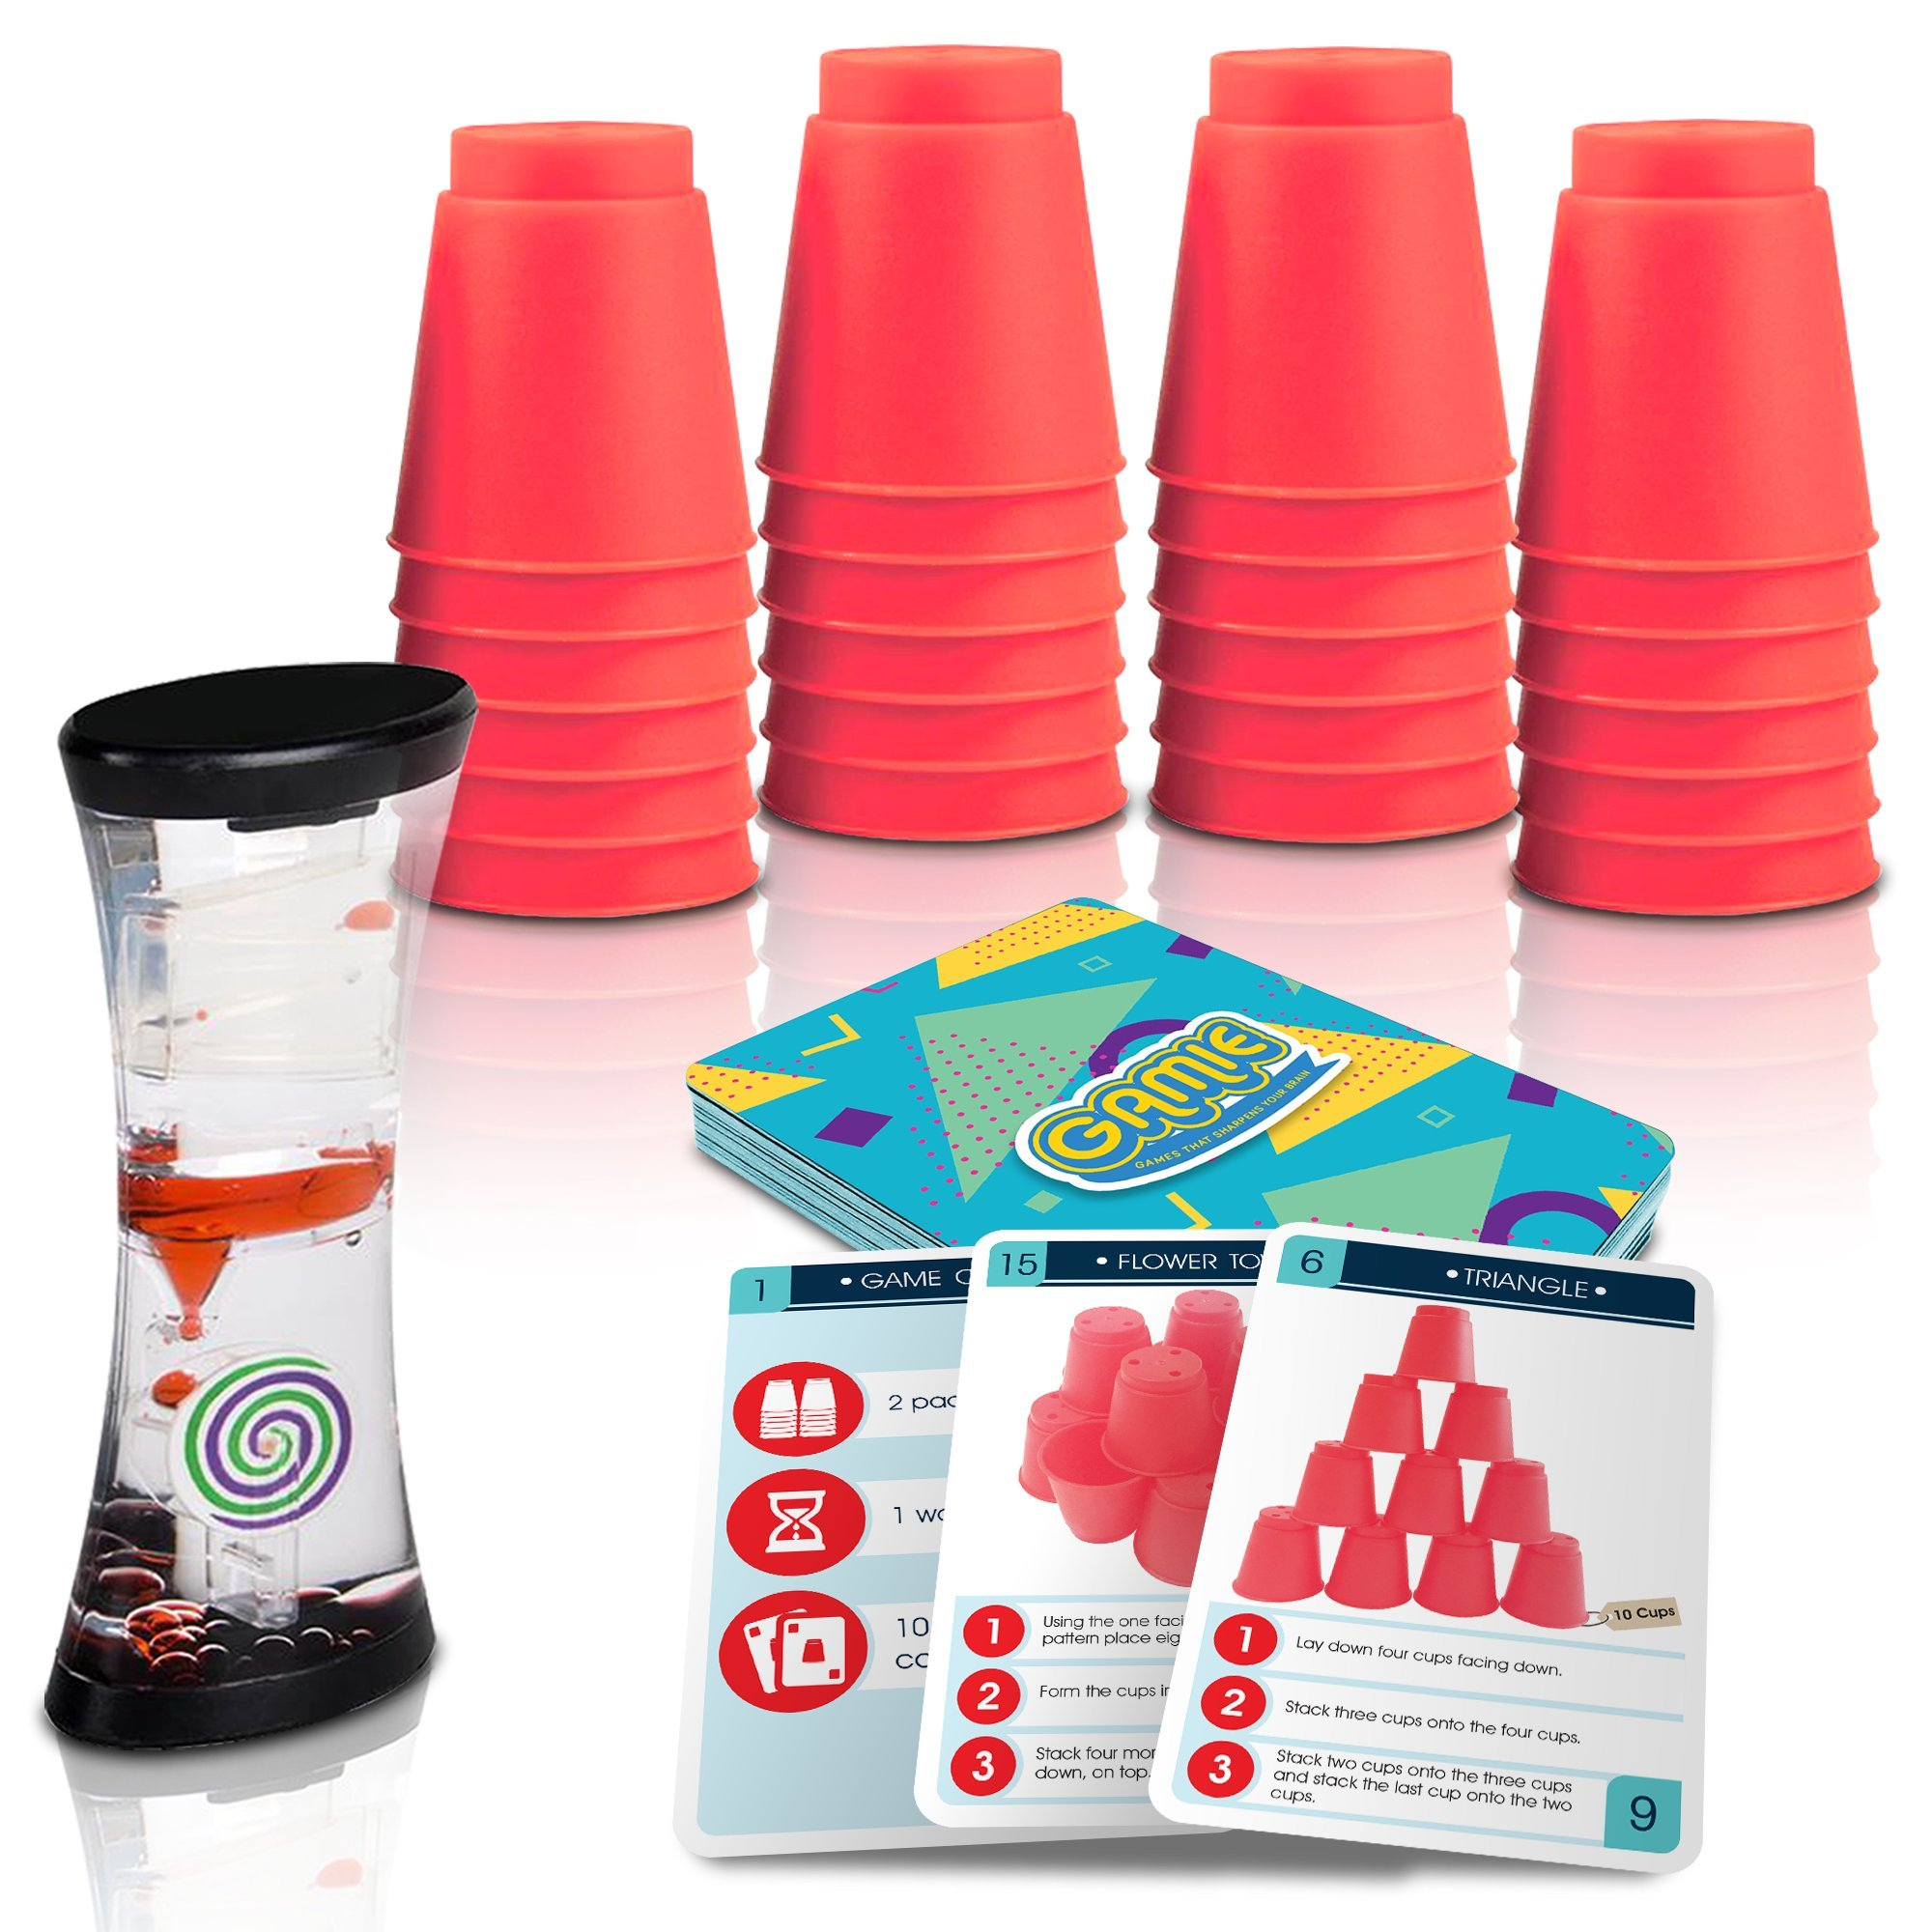 Cups Game w/ 18 Fun Challenges & Water Timer by Gamie, 24 Stacking Cups, Sturdy Plastic, Classic Quick Stacking Cup Game for Kids, Amazing Family Time (Red)